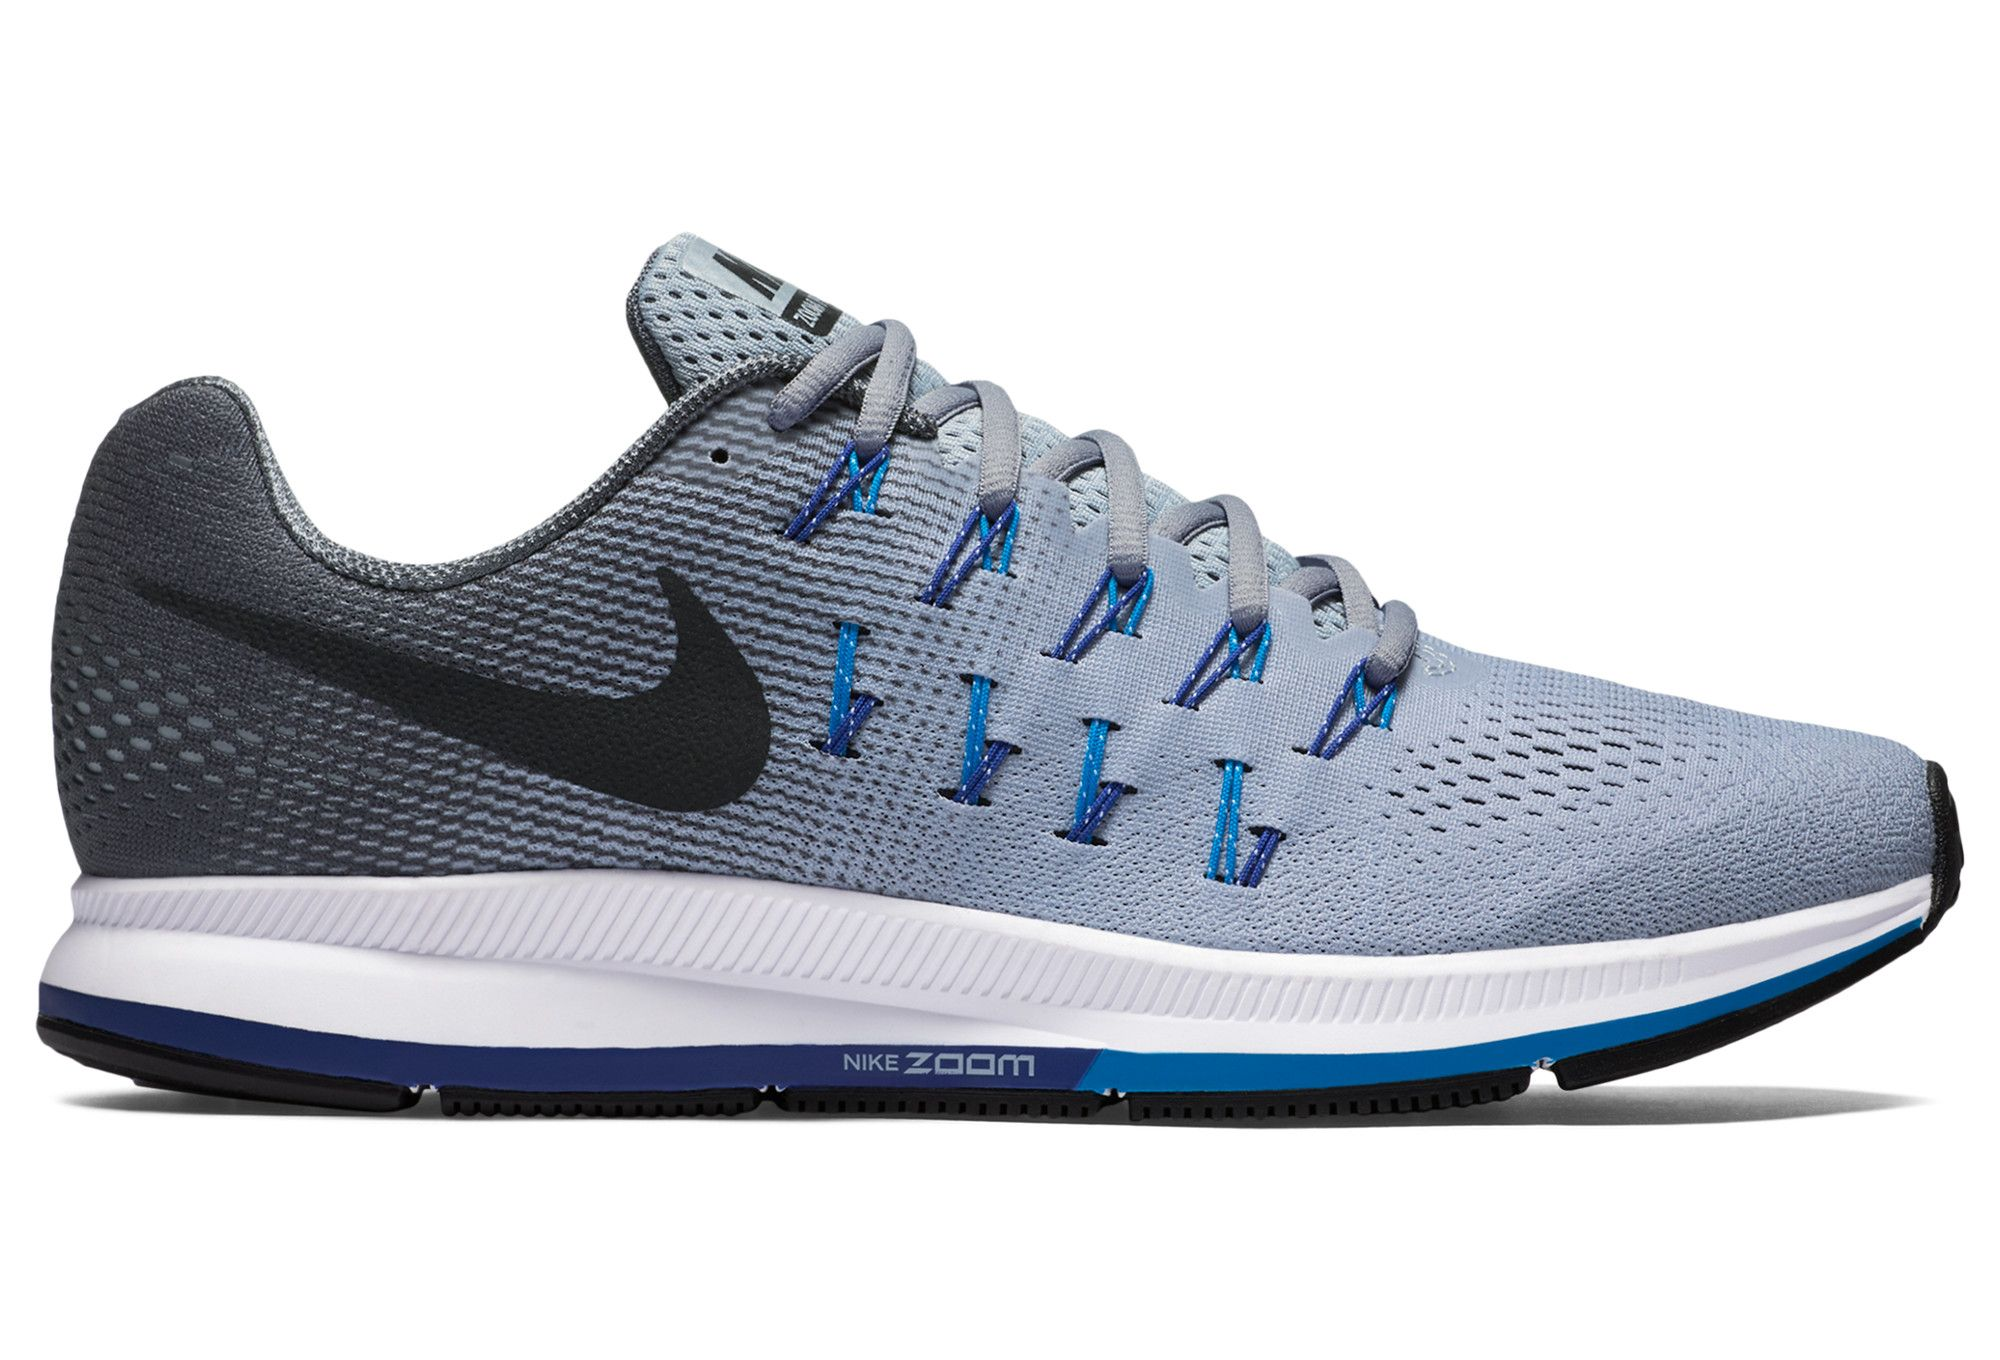 meilleure sélection 48cd0 a29e1 NIKE AIR ZOOM PEGASUS 33 Gris Homme | Shoes | Nike air zoom ...